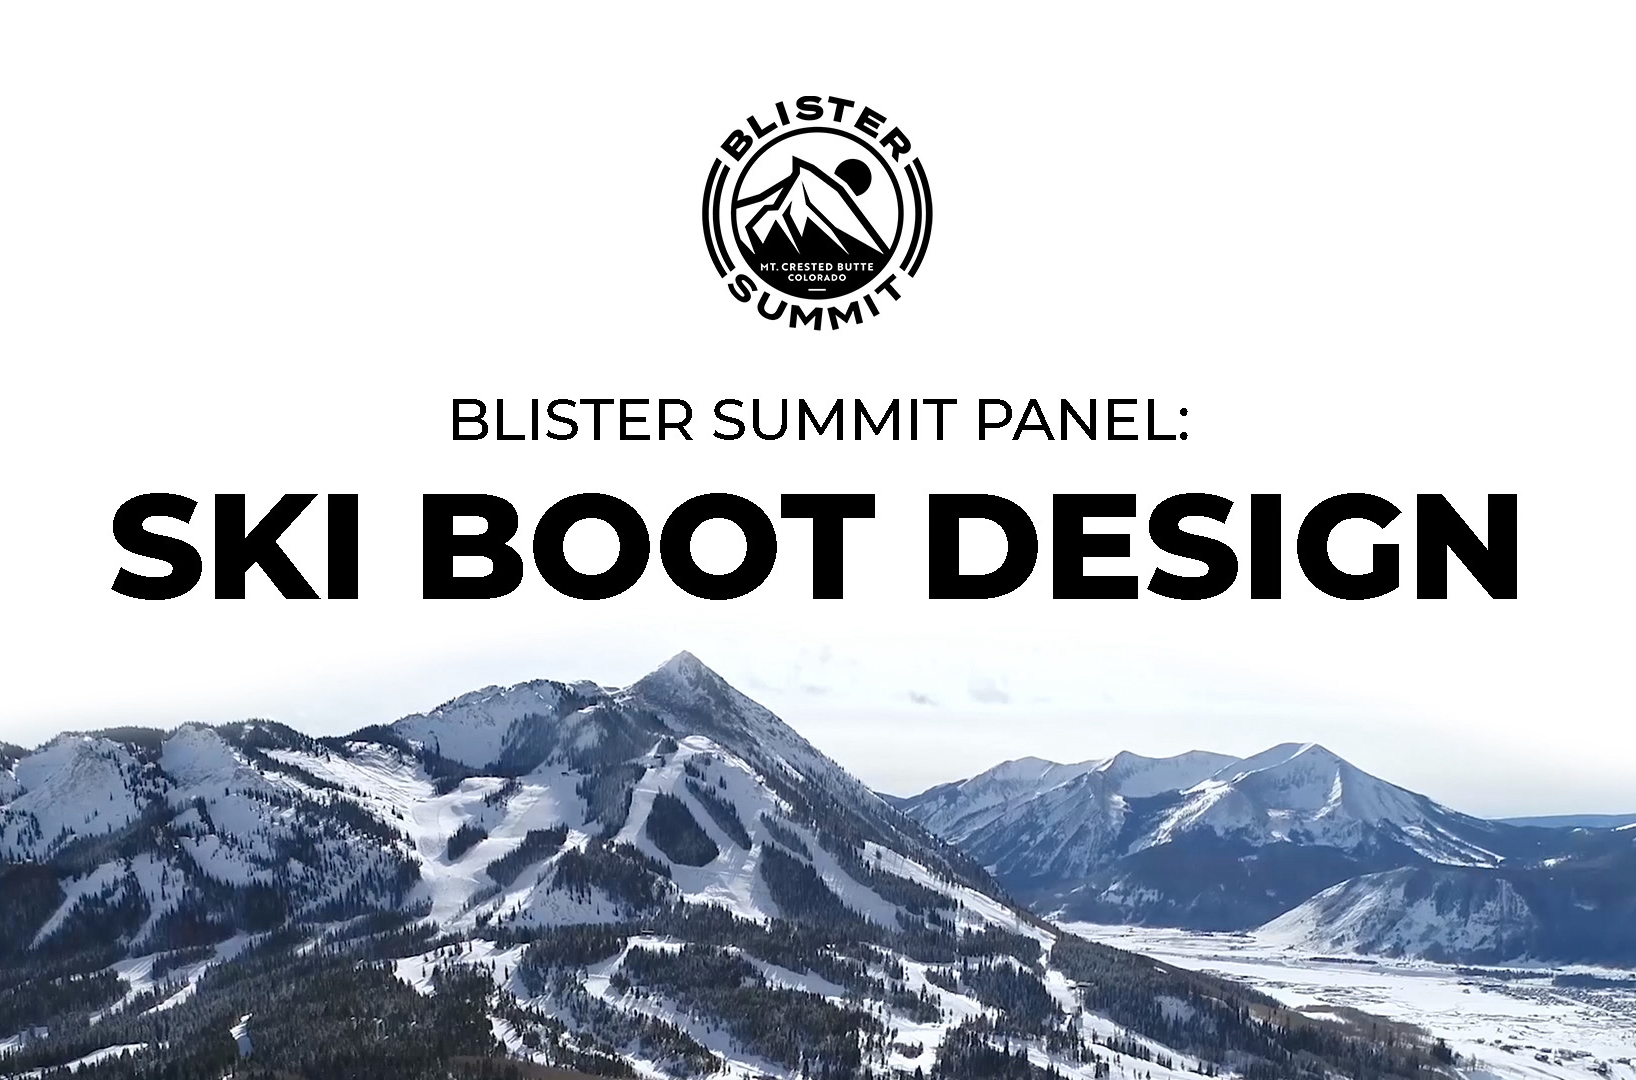 In the Blister Summit panel on ski design, we talk to three key people in the world of ski boots — Thor Verdonk, global brand director of Lange ski boots; Matt Manser, product manager of Atomic ski boots; and Stefano Mantegazza, product manager of the Tecnica Group — about their design philosophies; whether we should get rid of flex ratings; whether a precise-fitting boot can be a warm boot; the most frustrating trend in ski design today; where the biggest innovations are currently taking place; and more.